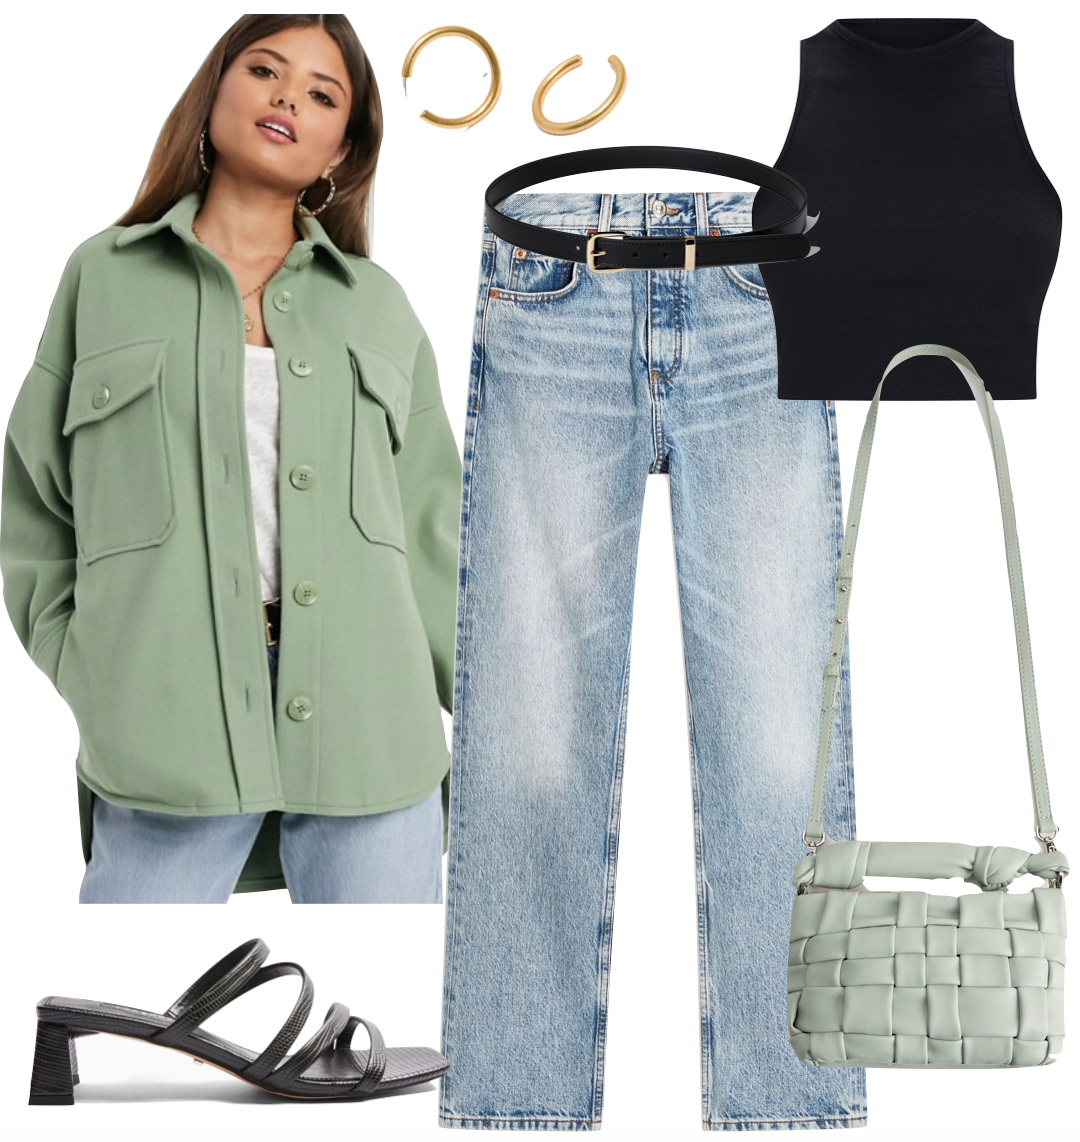 Summer street style 2020 - Hailey Bieber Outfit with green oversized shirt jacket, black racerback crop top, black and gold belt, straight leg jeans, chunky gold hoop earrings, green quilted bag, and black strappy mule sandals